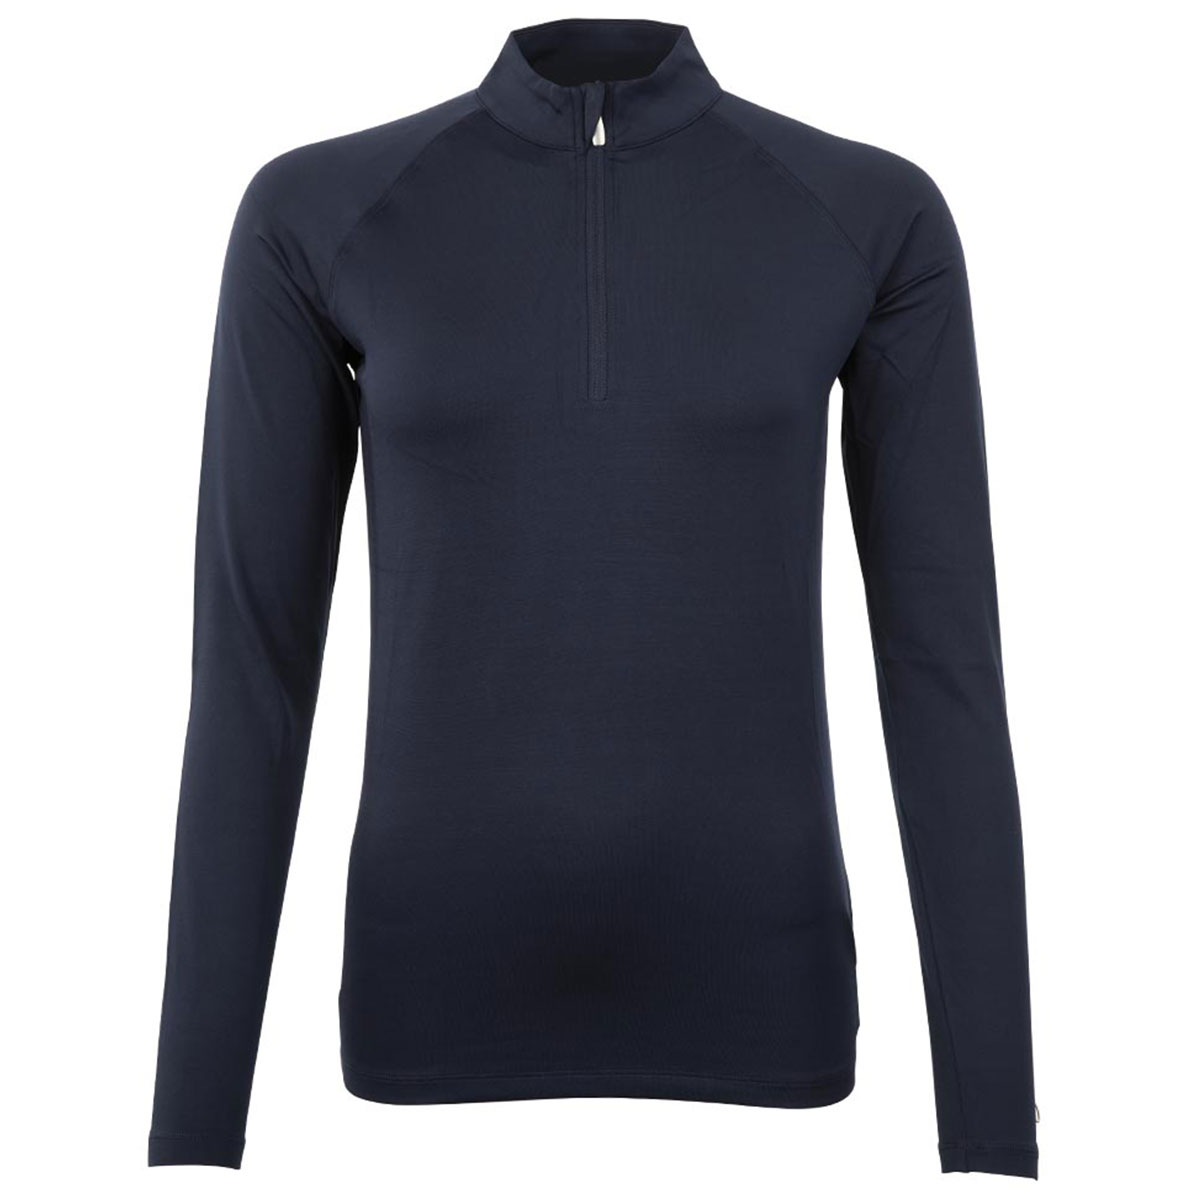 BR Event pully donkerblauw maat:xs